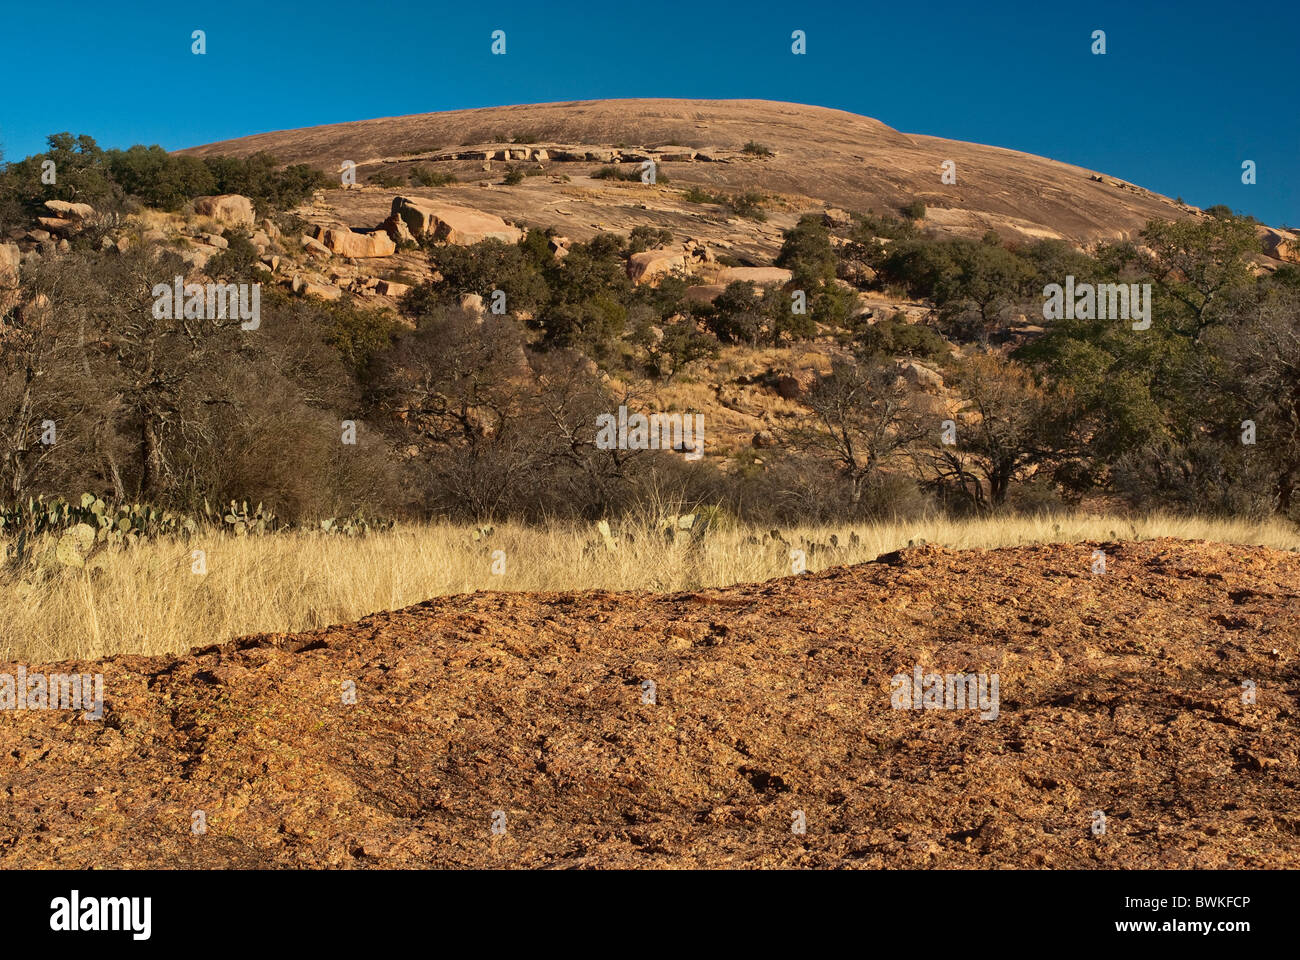 Hauptkuppel enchanted Rock State Natural Area, im Gebirge in der Nähe von Fredericksburg, Texas, USA Stockbild